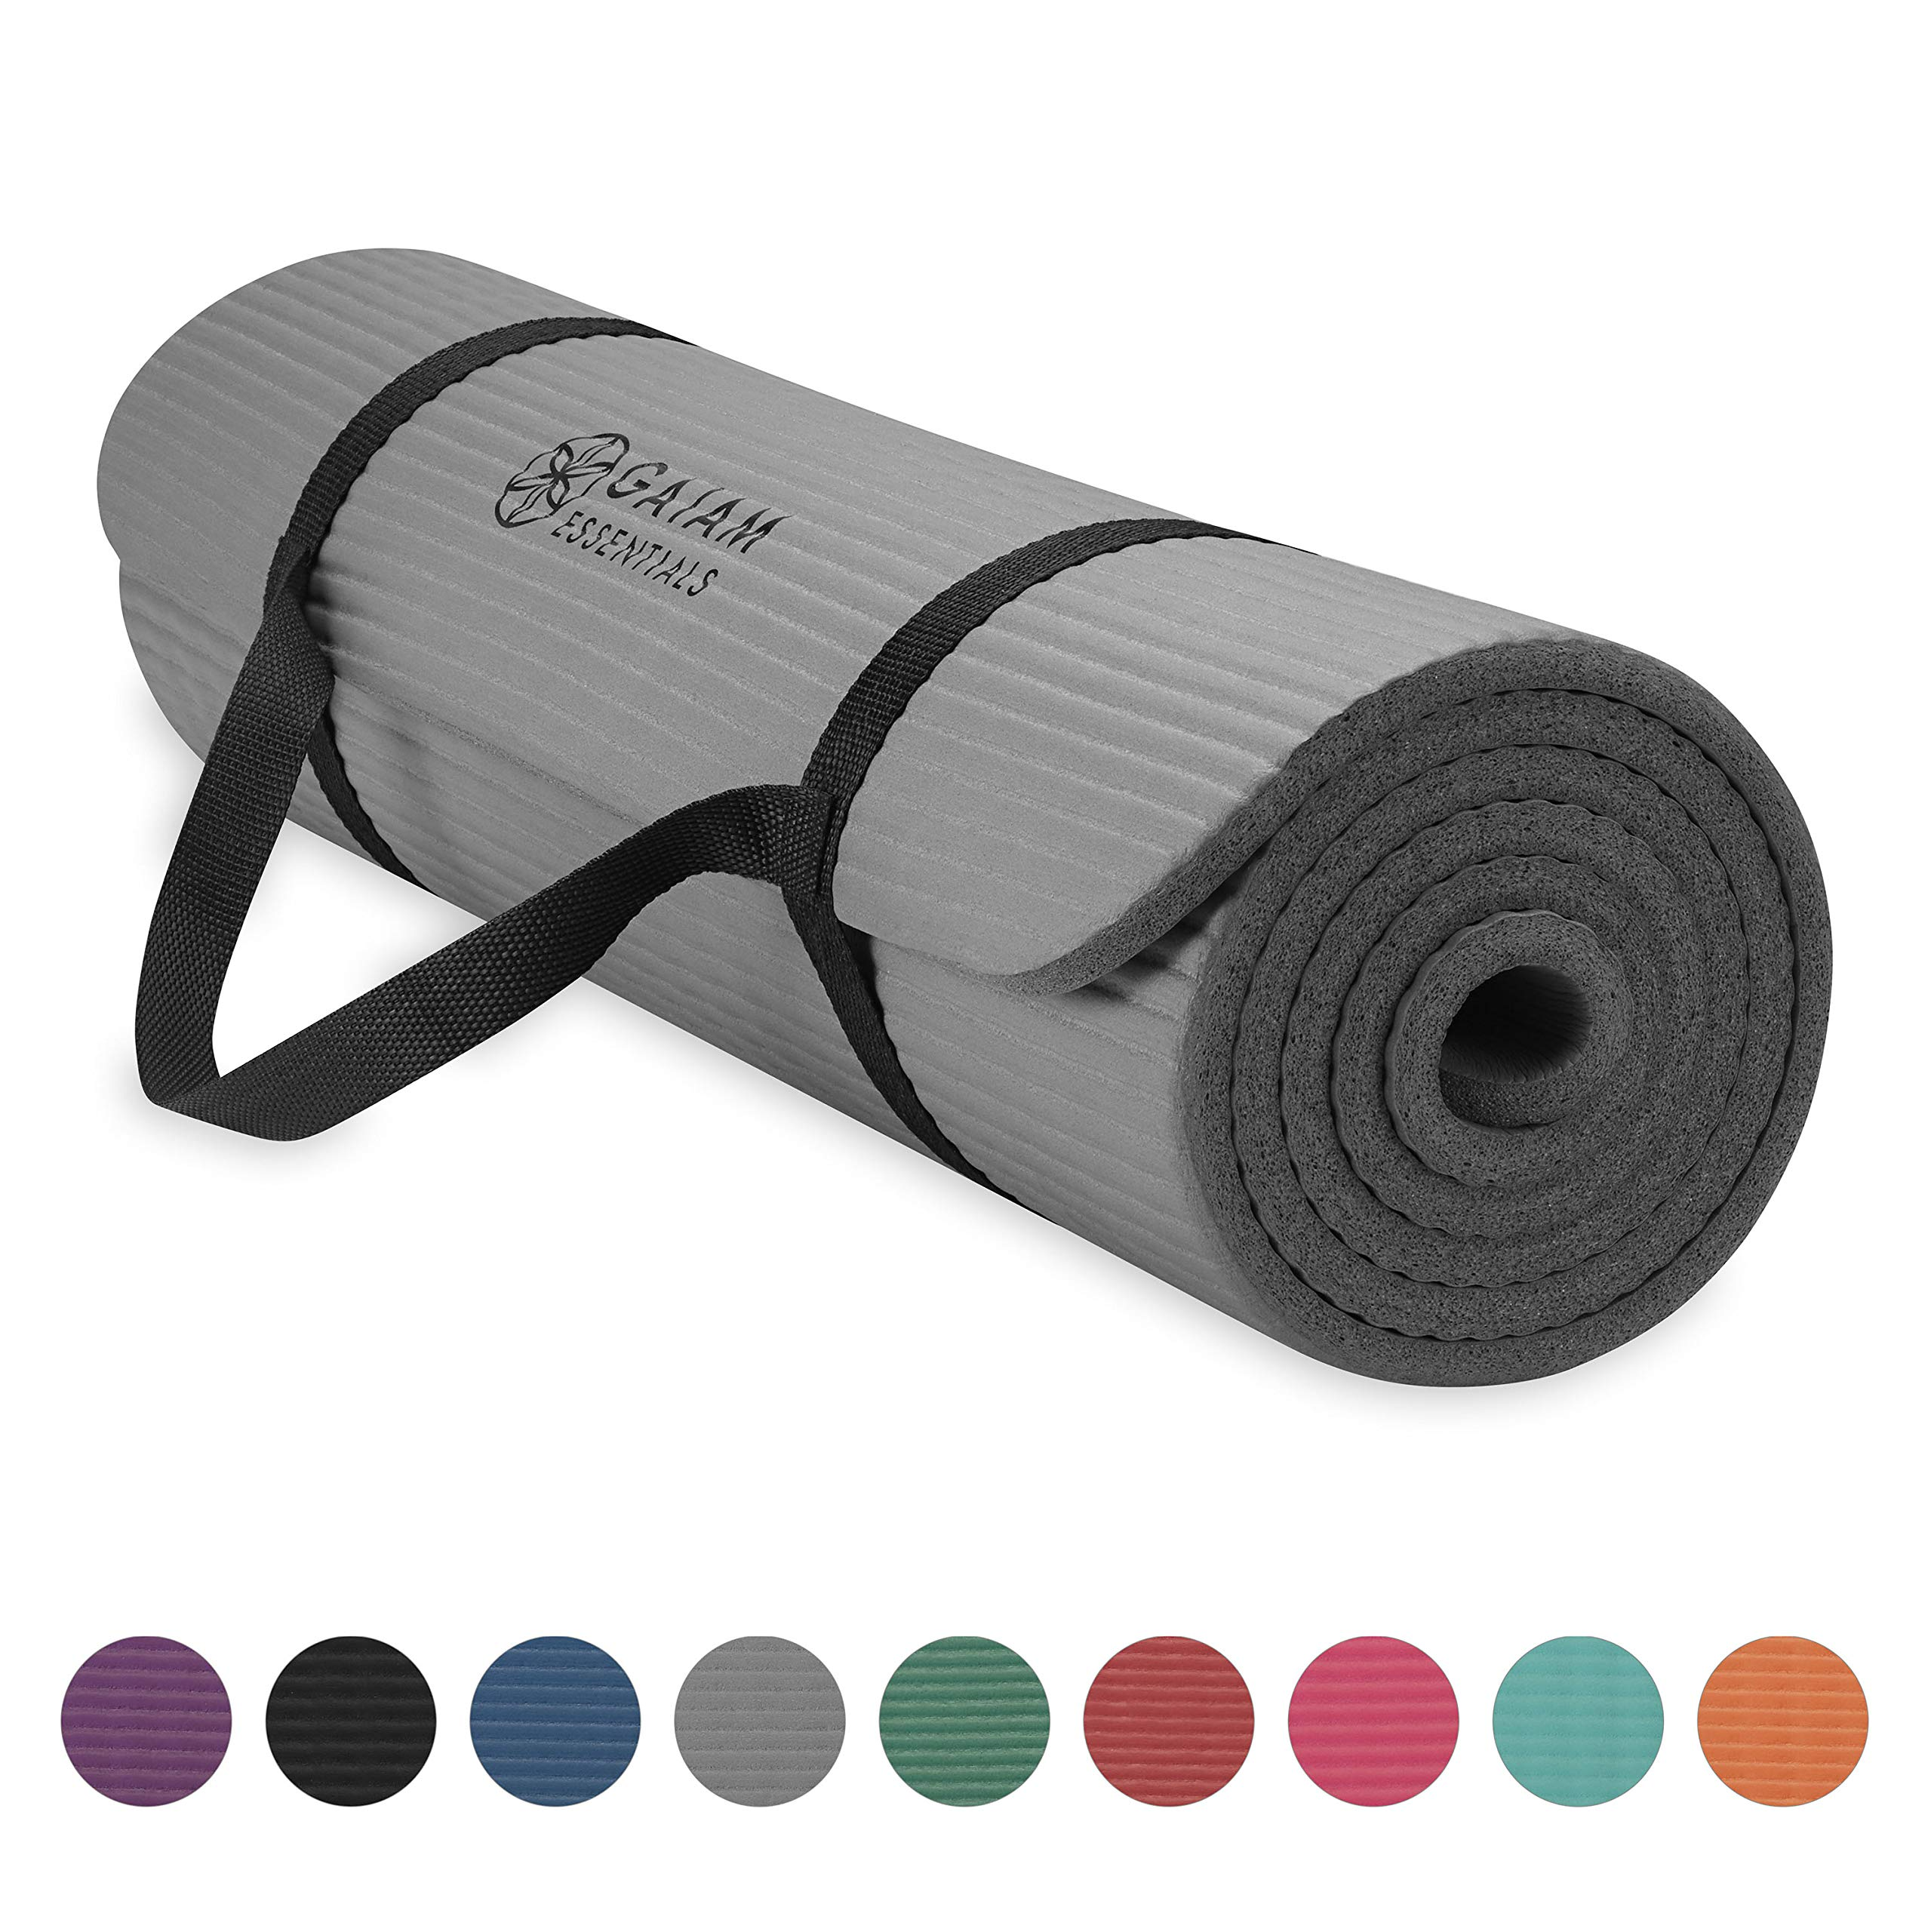 Gaiam Essentials Thick Yoga Mat Fitness & Exercise Mat with Easy-Cinch Yoga Mat Carrier Strap, Grey, 72''L x 24''W x 2/5 Inch Thick